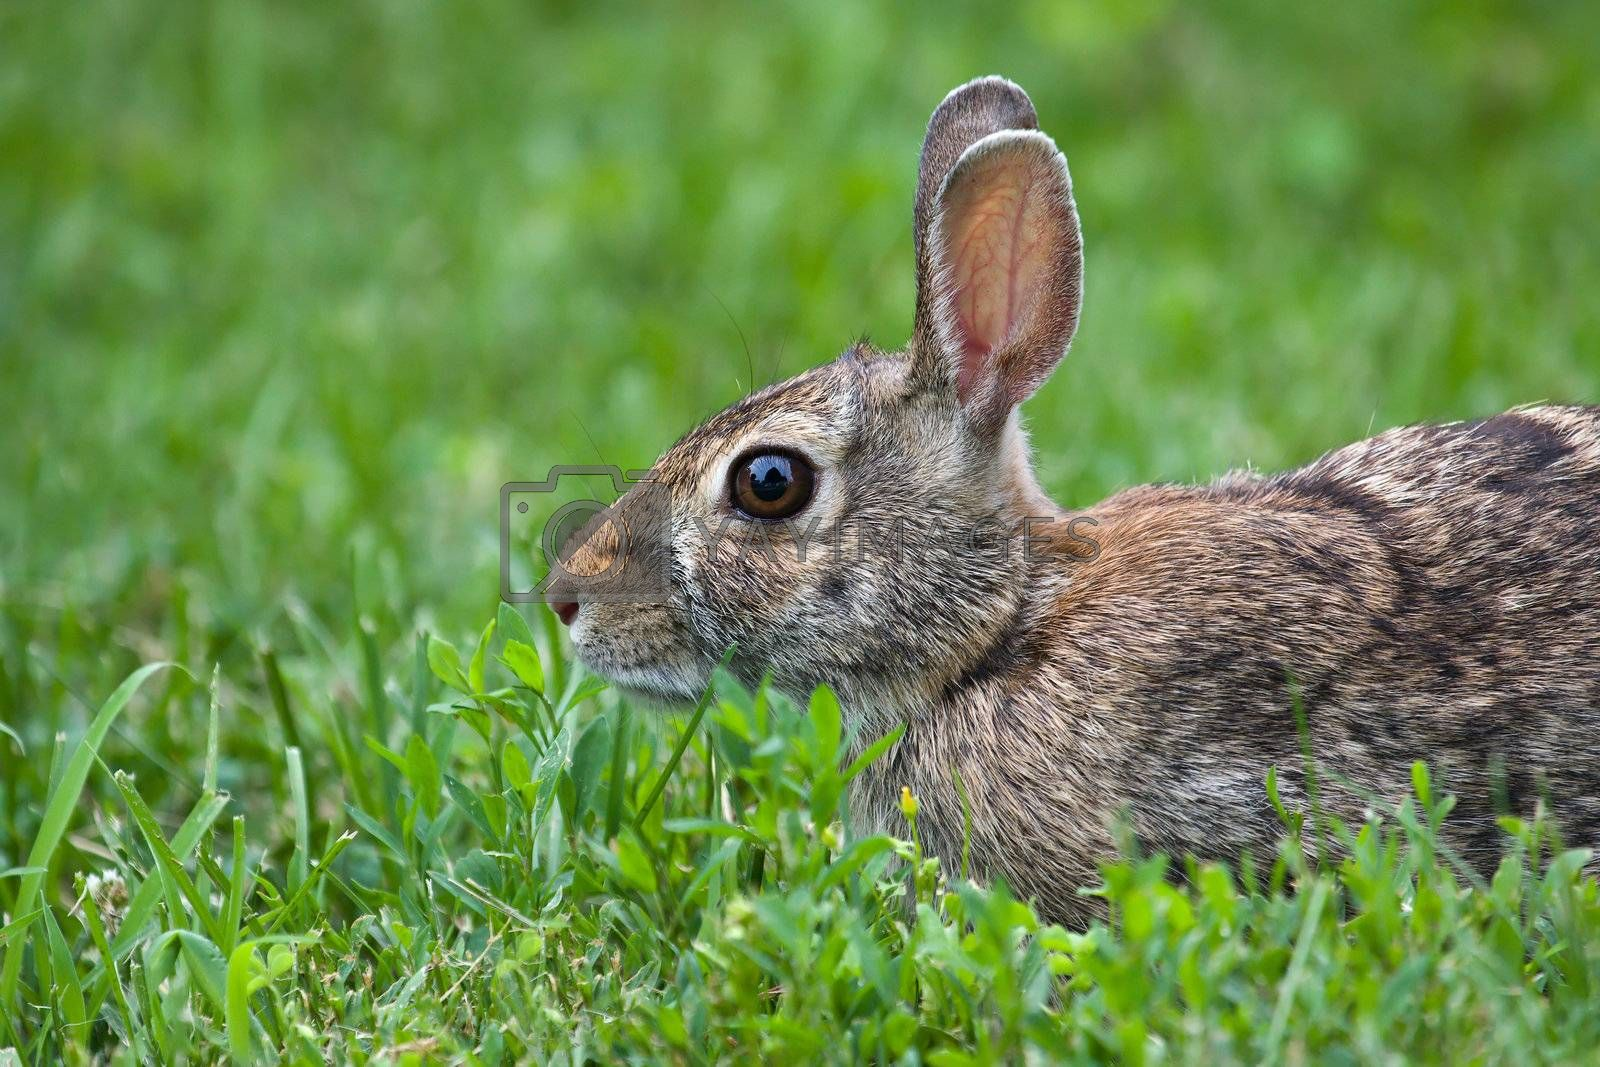 Peaceful Jack Rabbit Laying in the Grass.